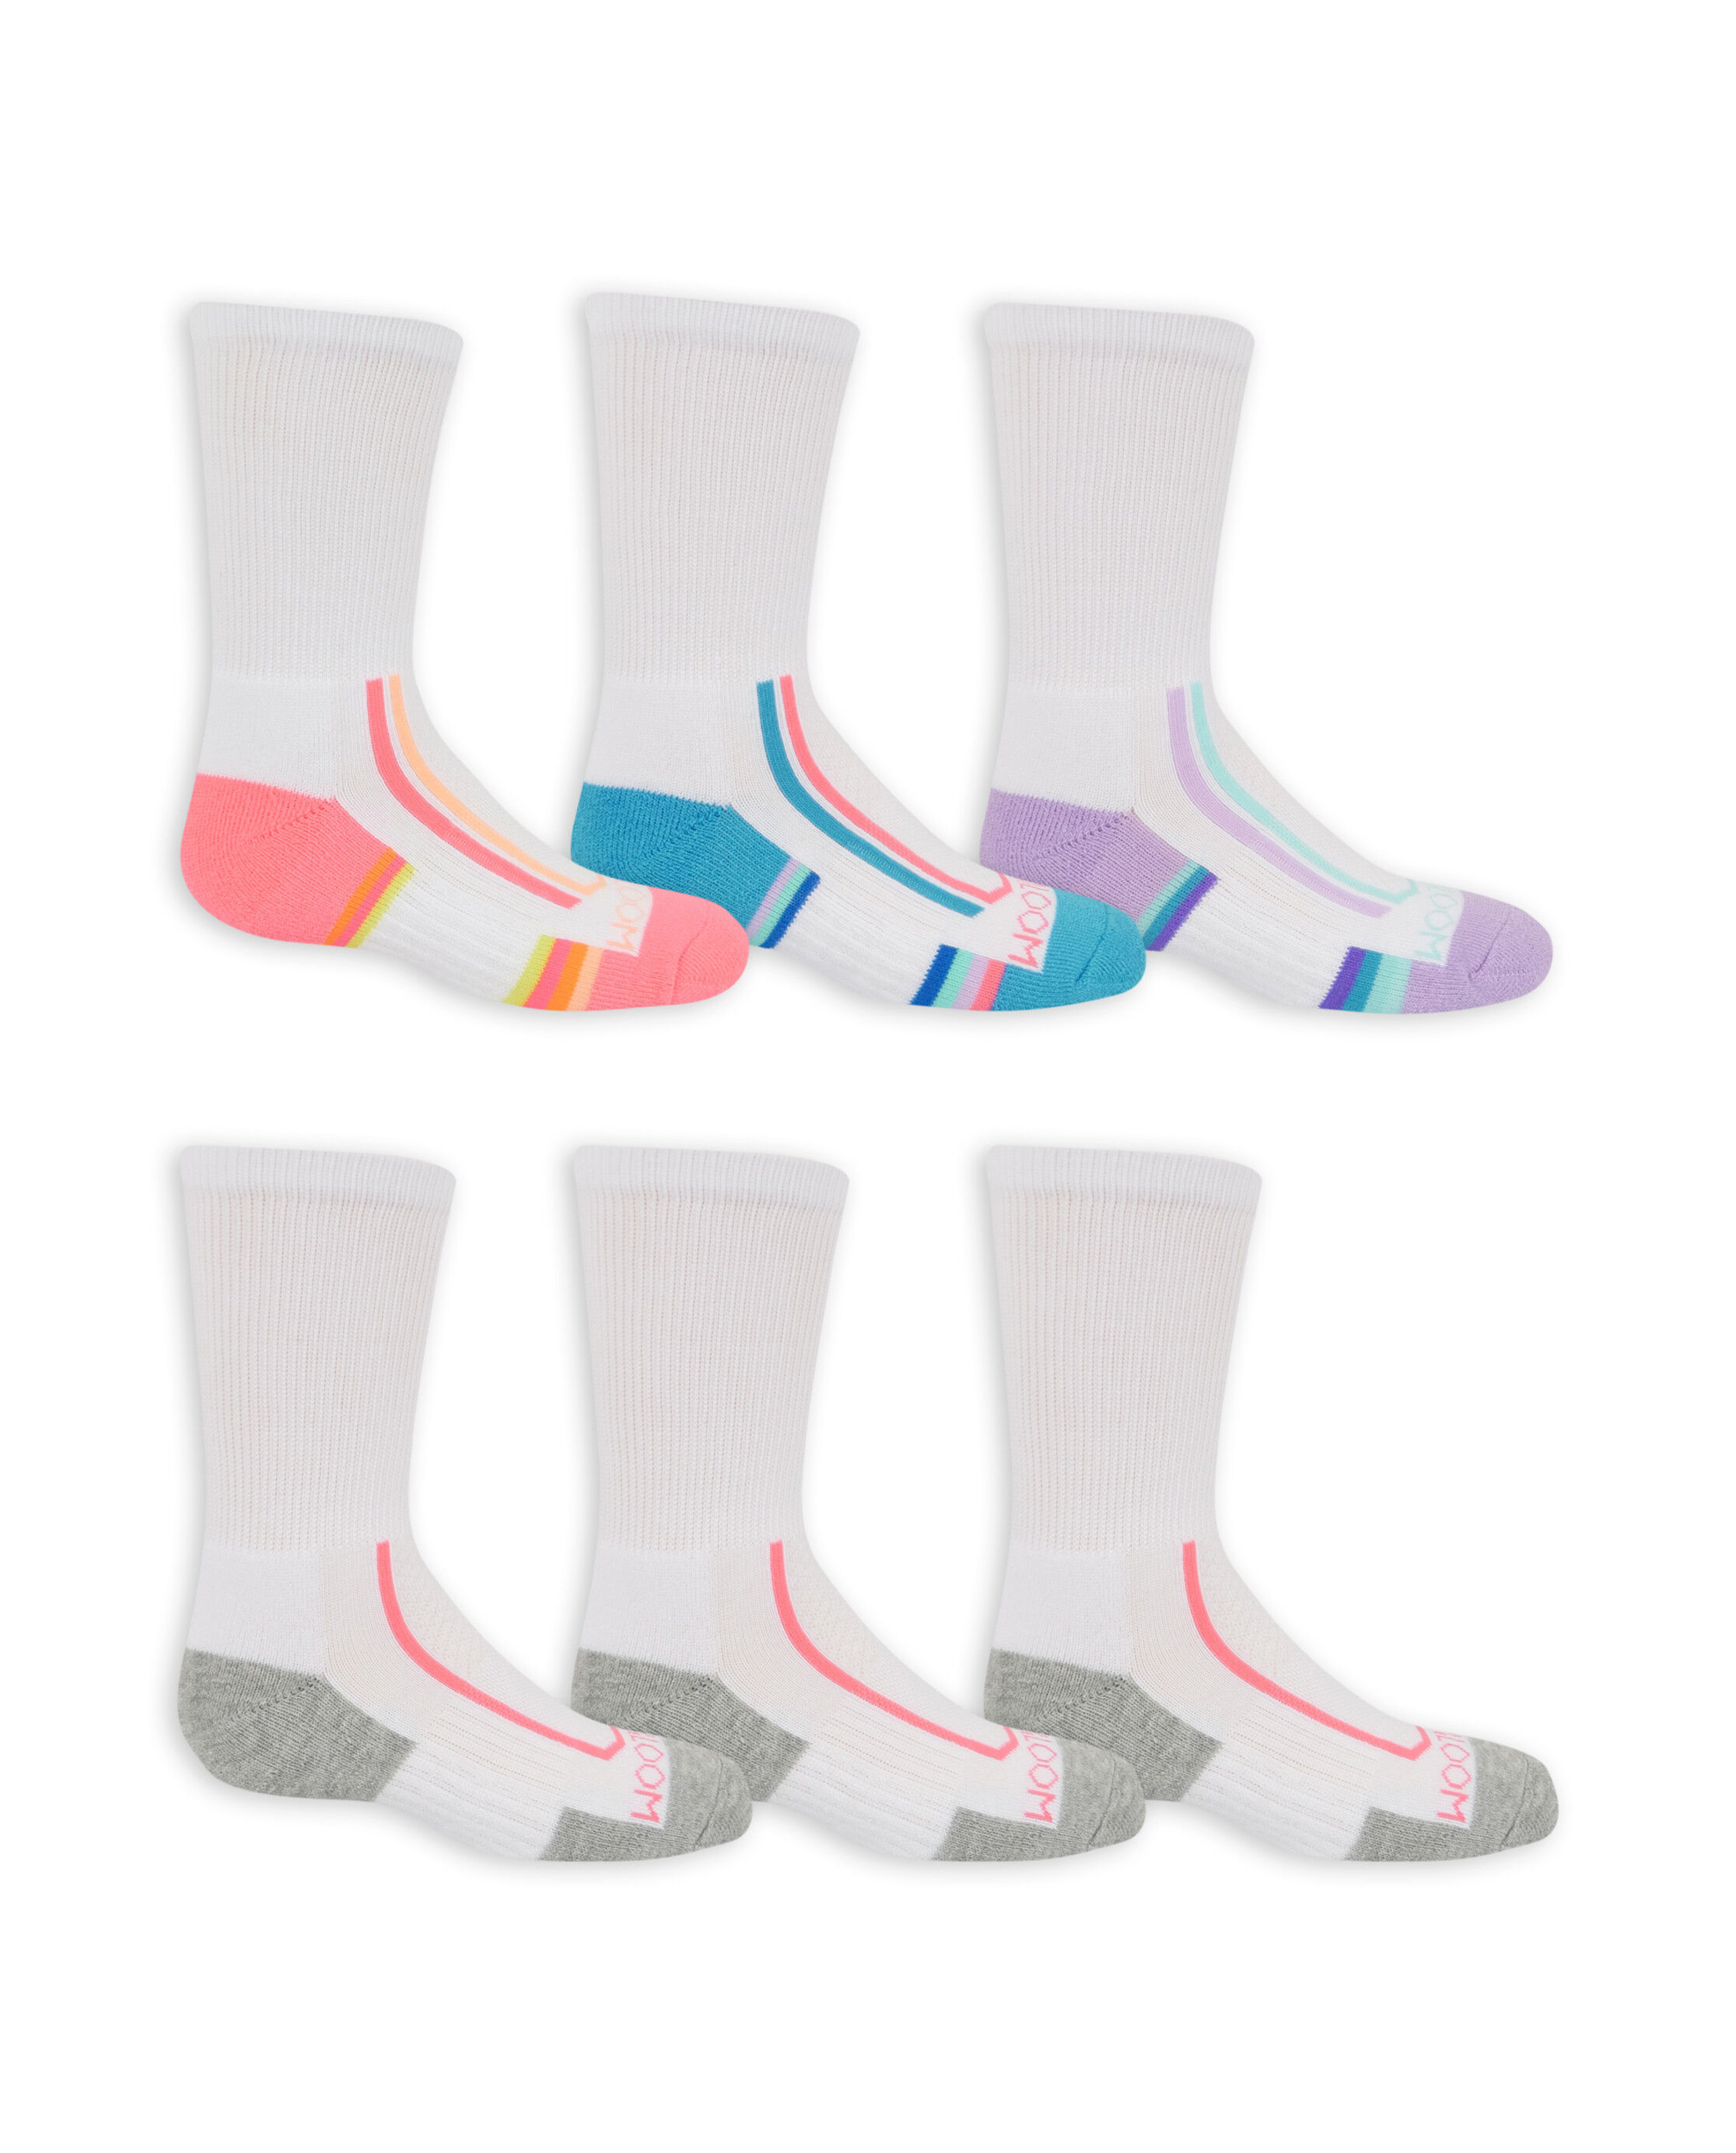 Toddler Girls Fruit of the Loom Crew Socks 6 PACK Size M 18-36 MONTHS 4-8.5